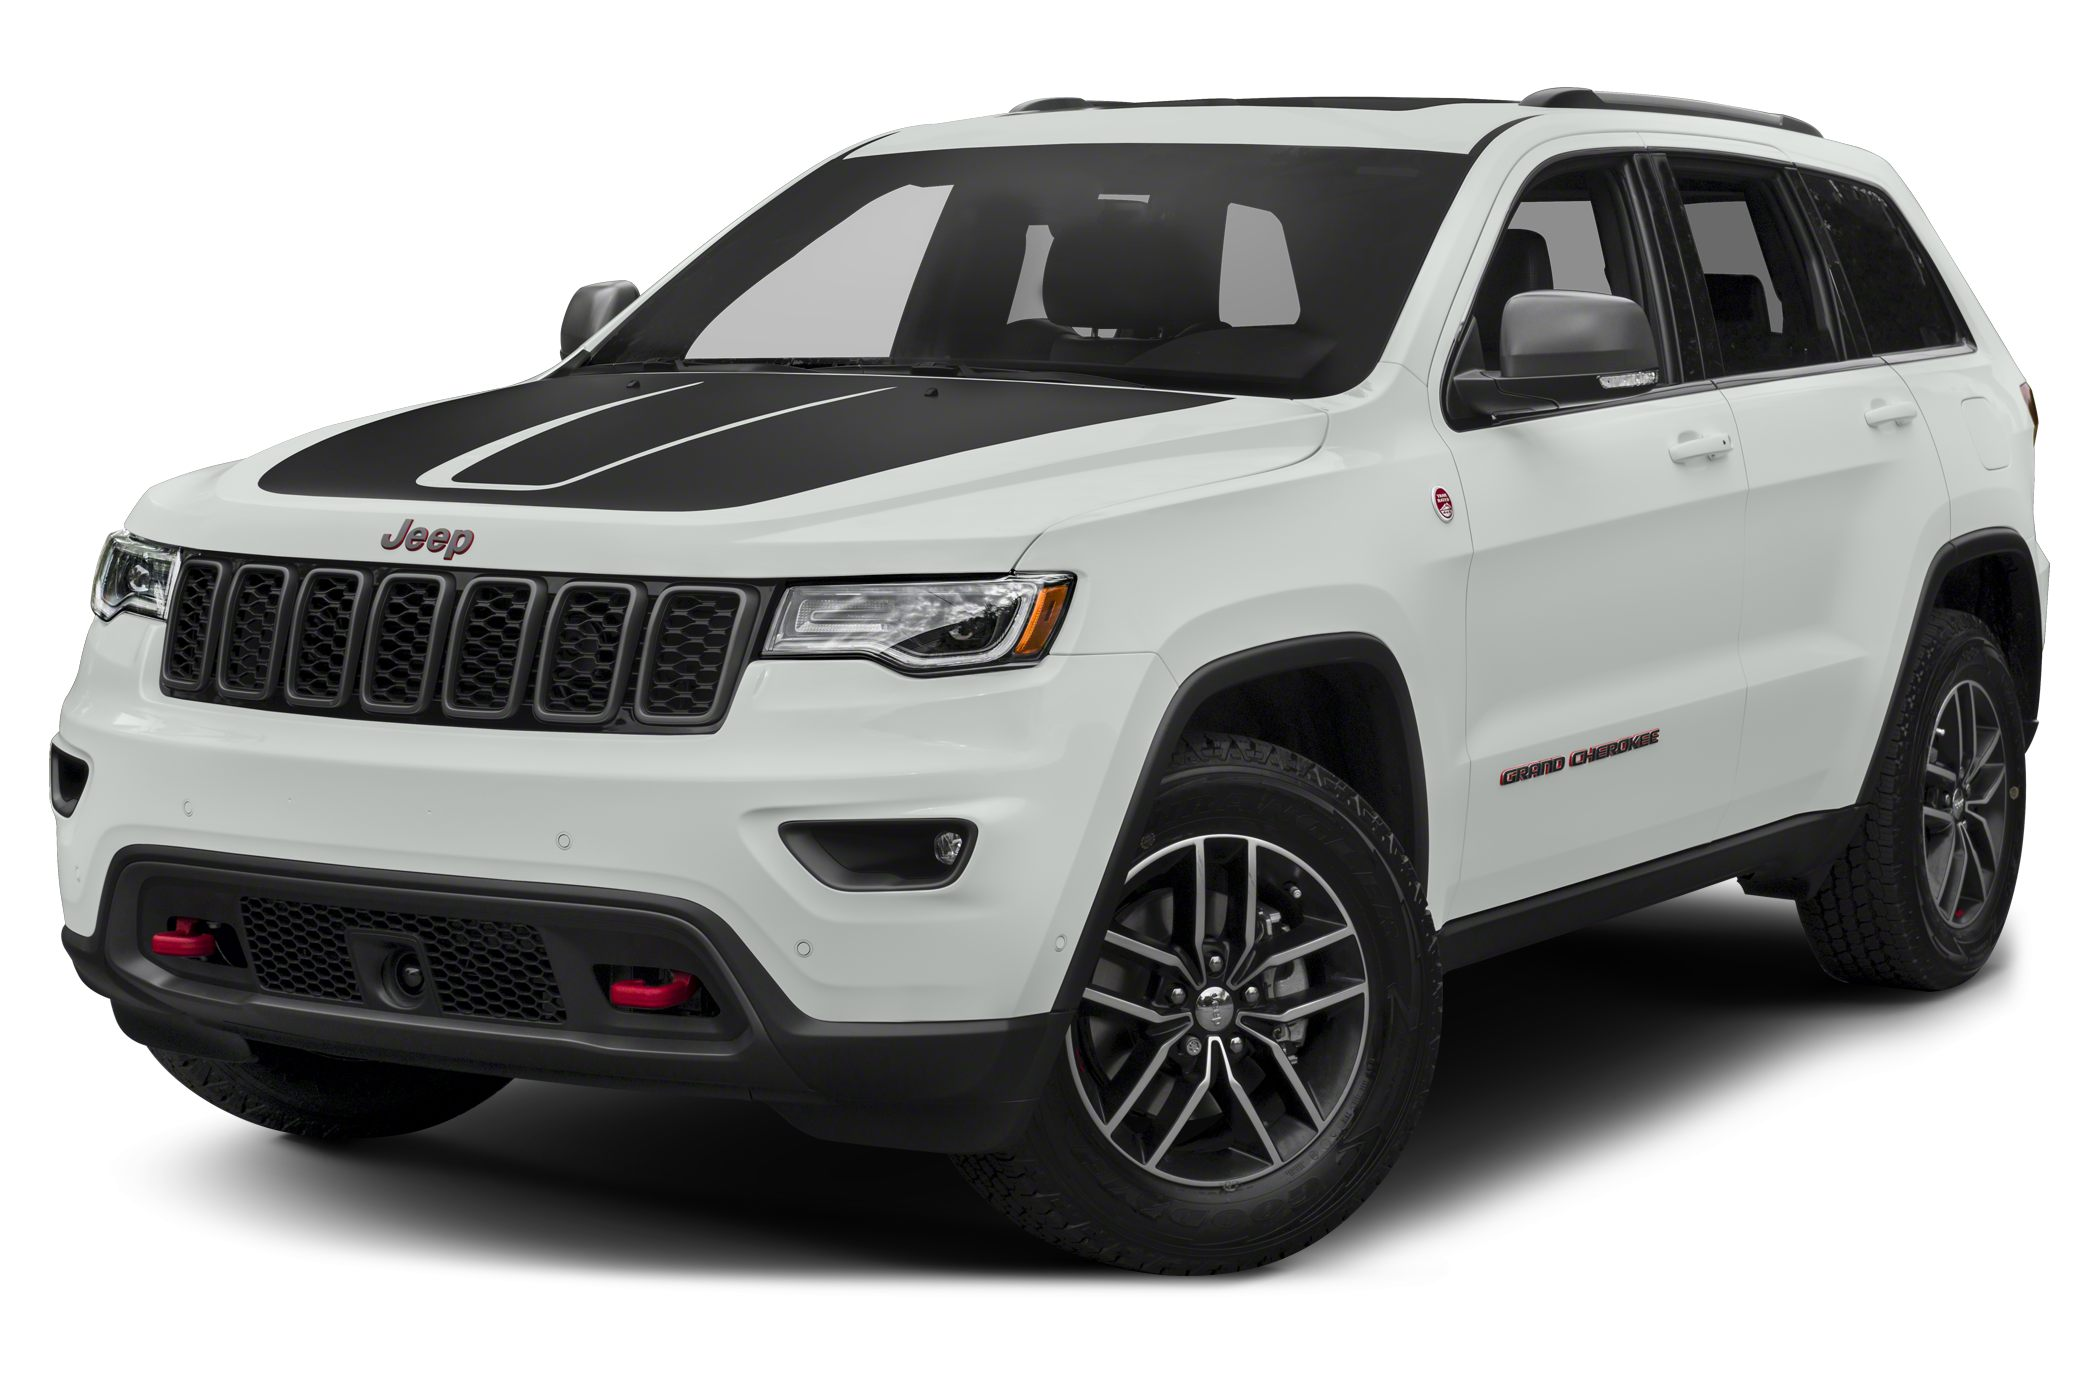 2017 Jeep Grand Cherokee Trailhawk Miles 1Color Granite Stock J1750 VIN 1C4RJFLG7HC603697